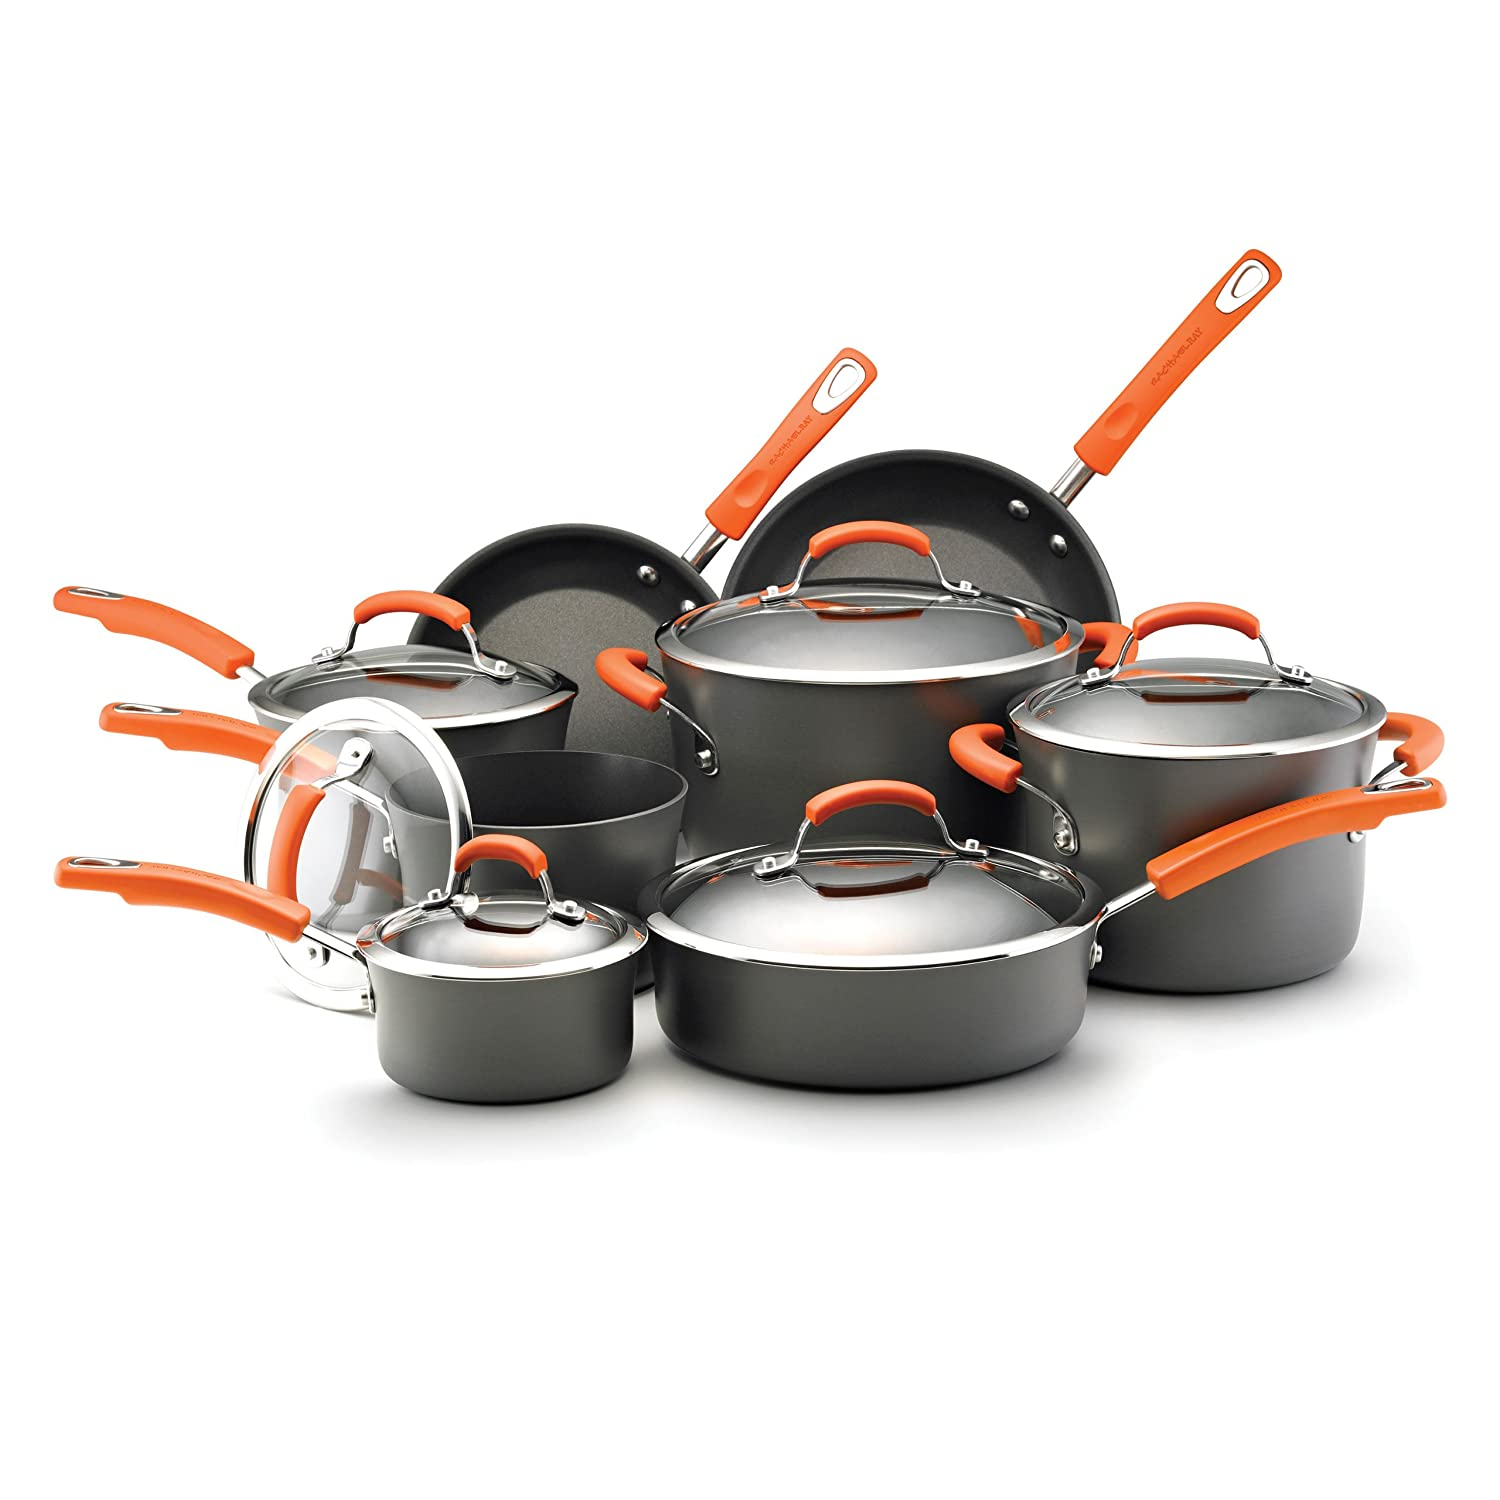 Hard Anodized Cookware Vs. Non-stick Cookware: What Is The